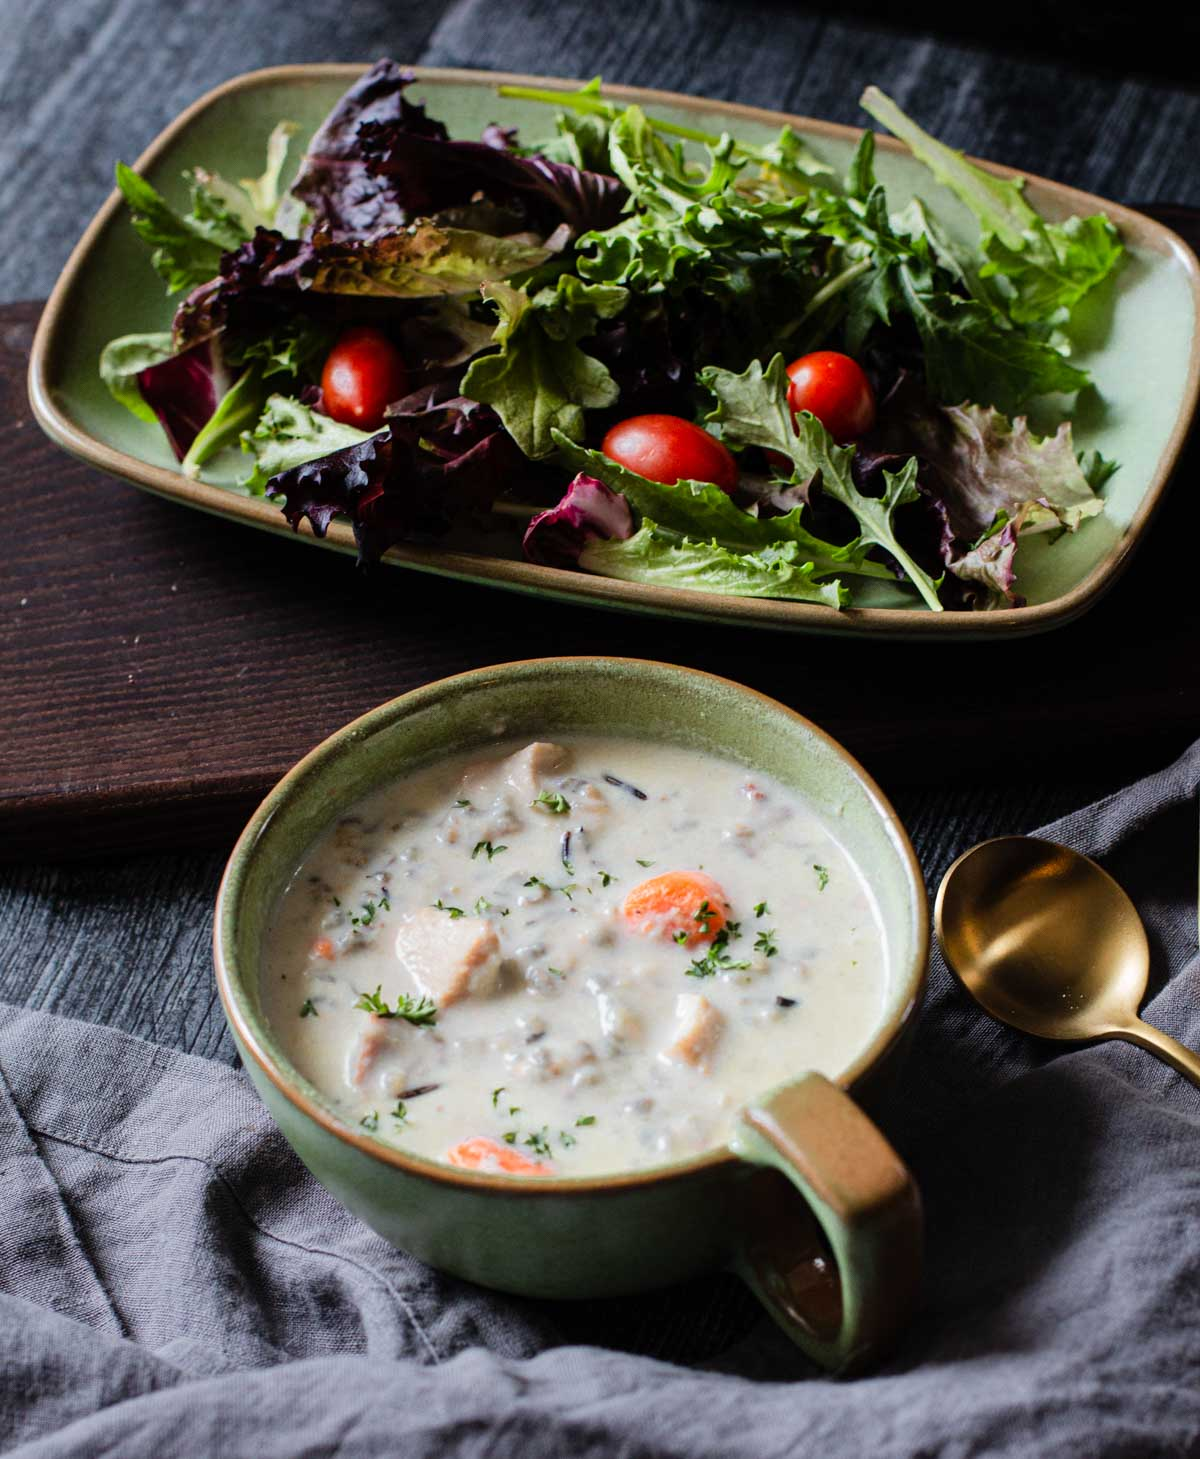 Creamy chicken and wild rice soup served with a side salad